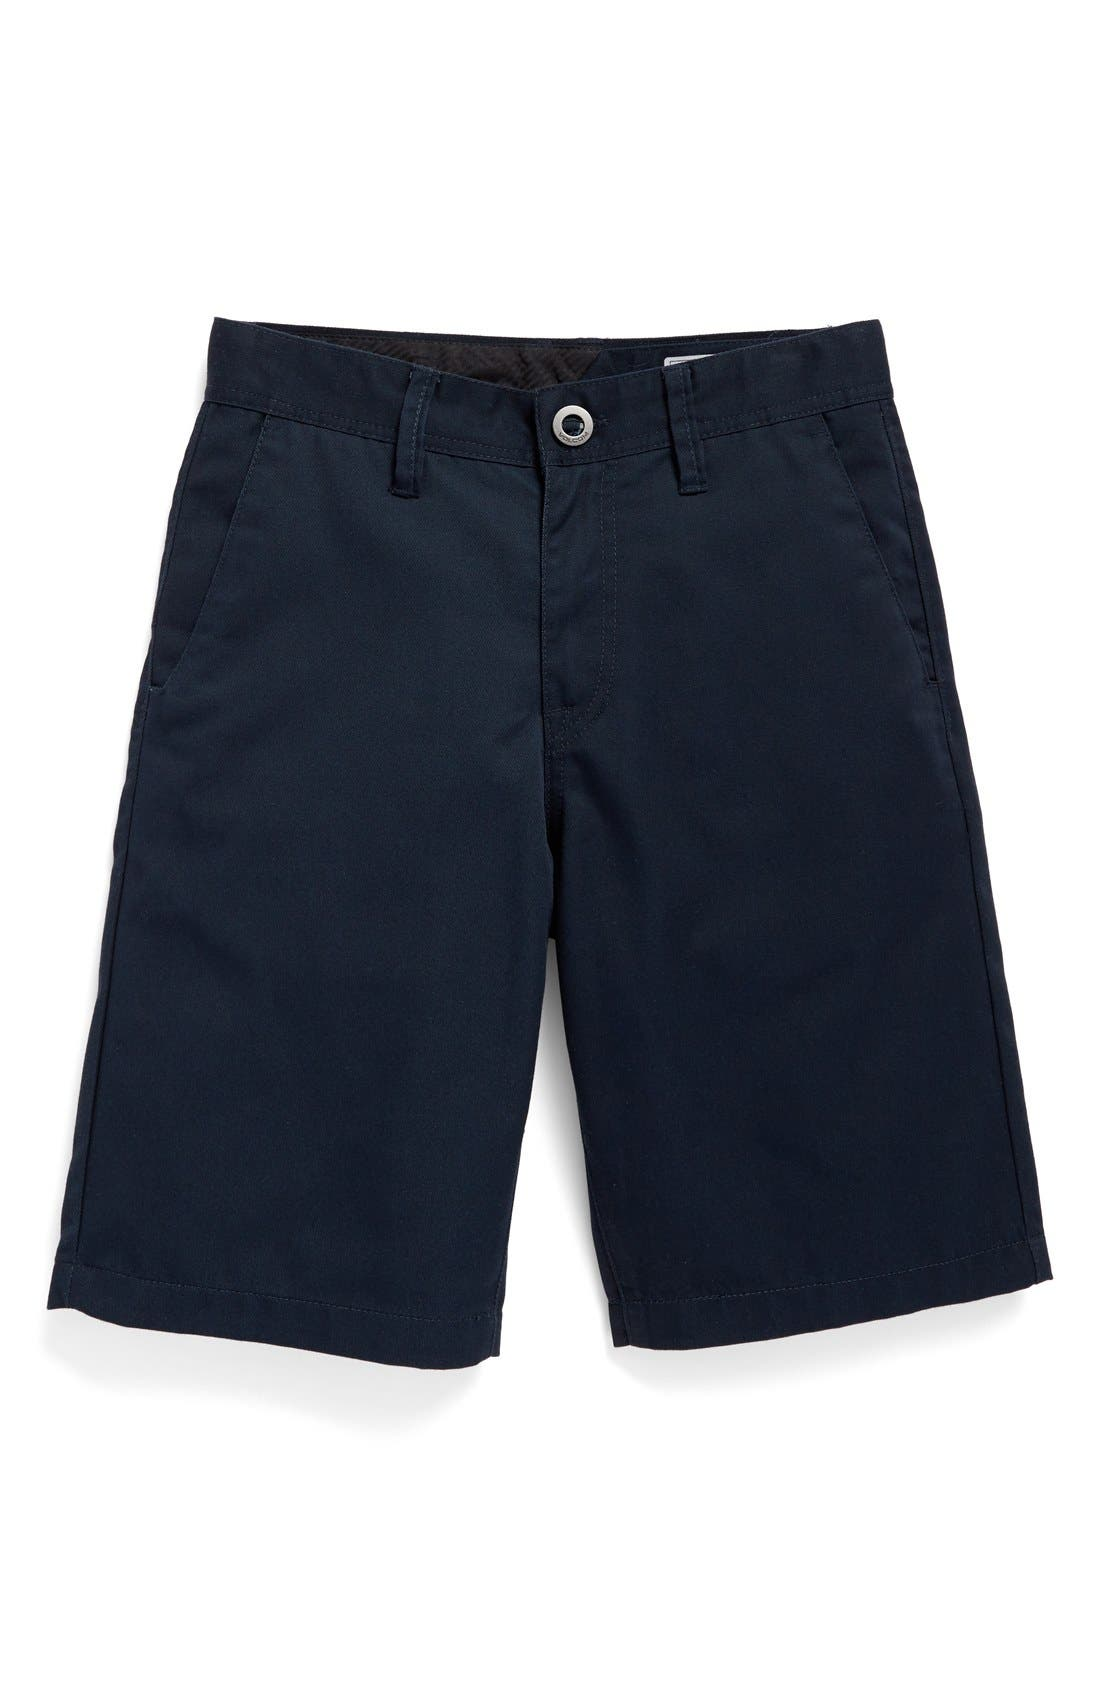 Volcom Chino Shorts (Toddler Boys, Little Boys & Big Boys)